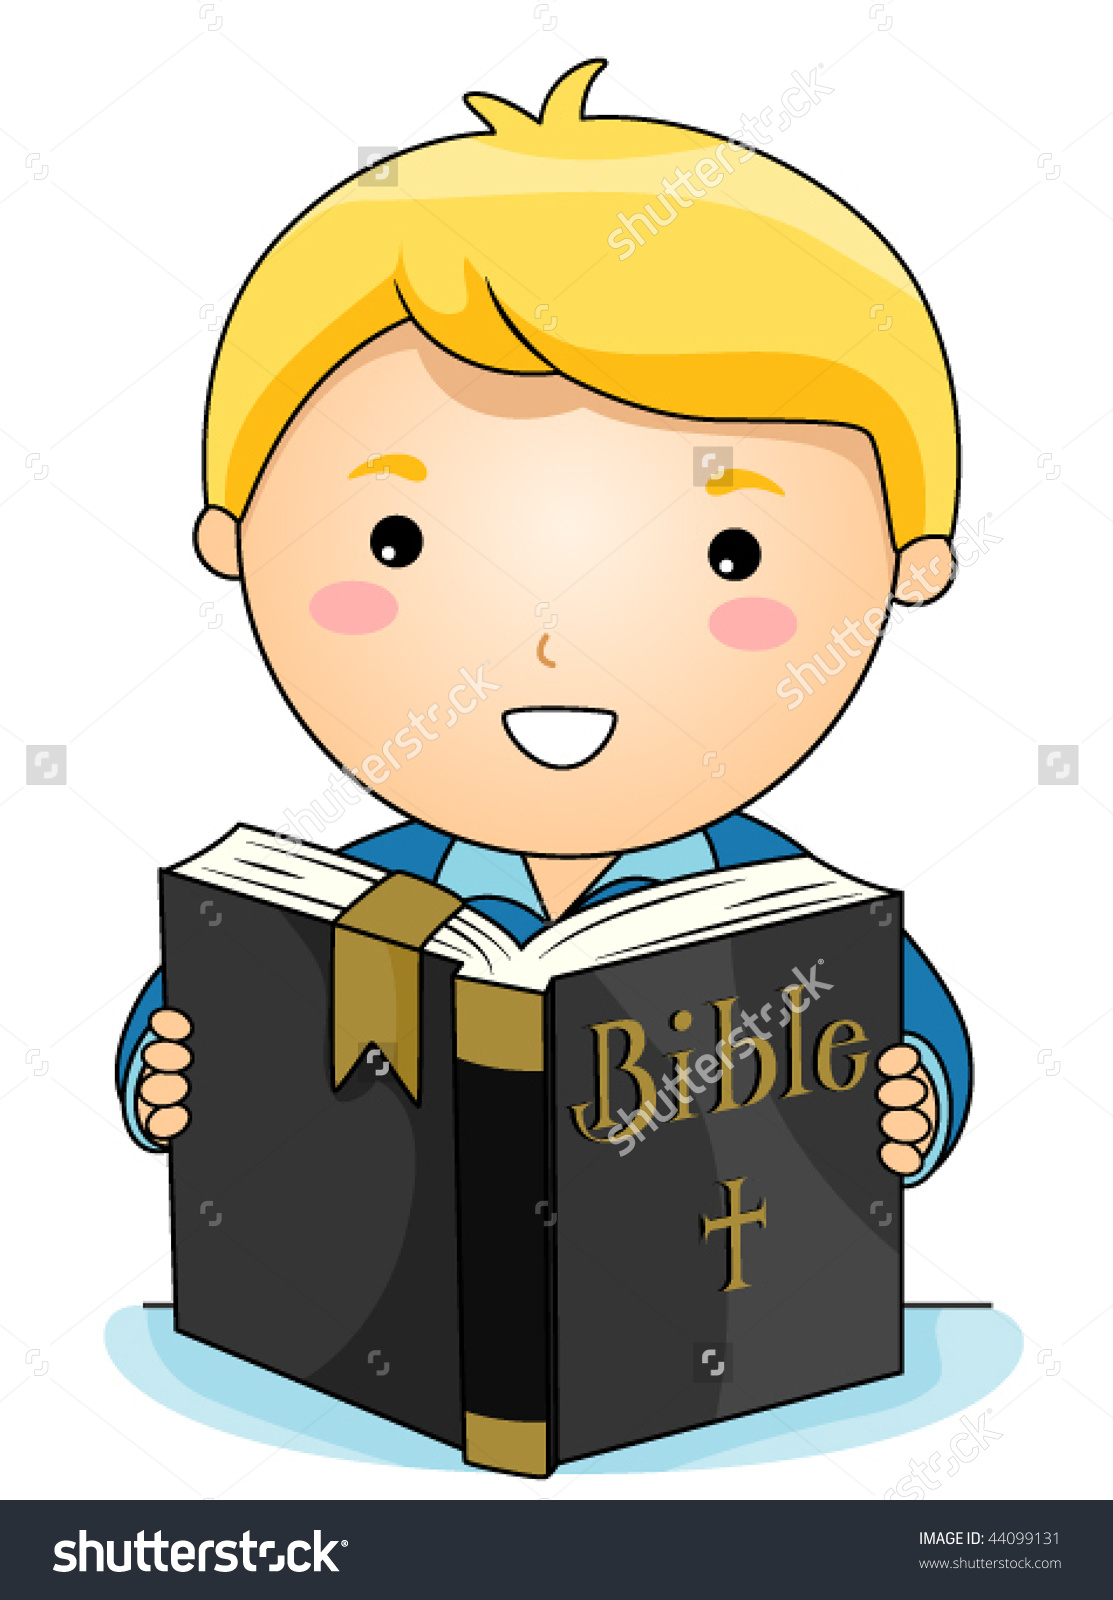 8840 Bible free clipart.